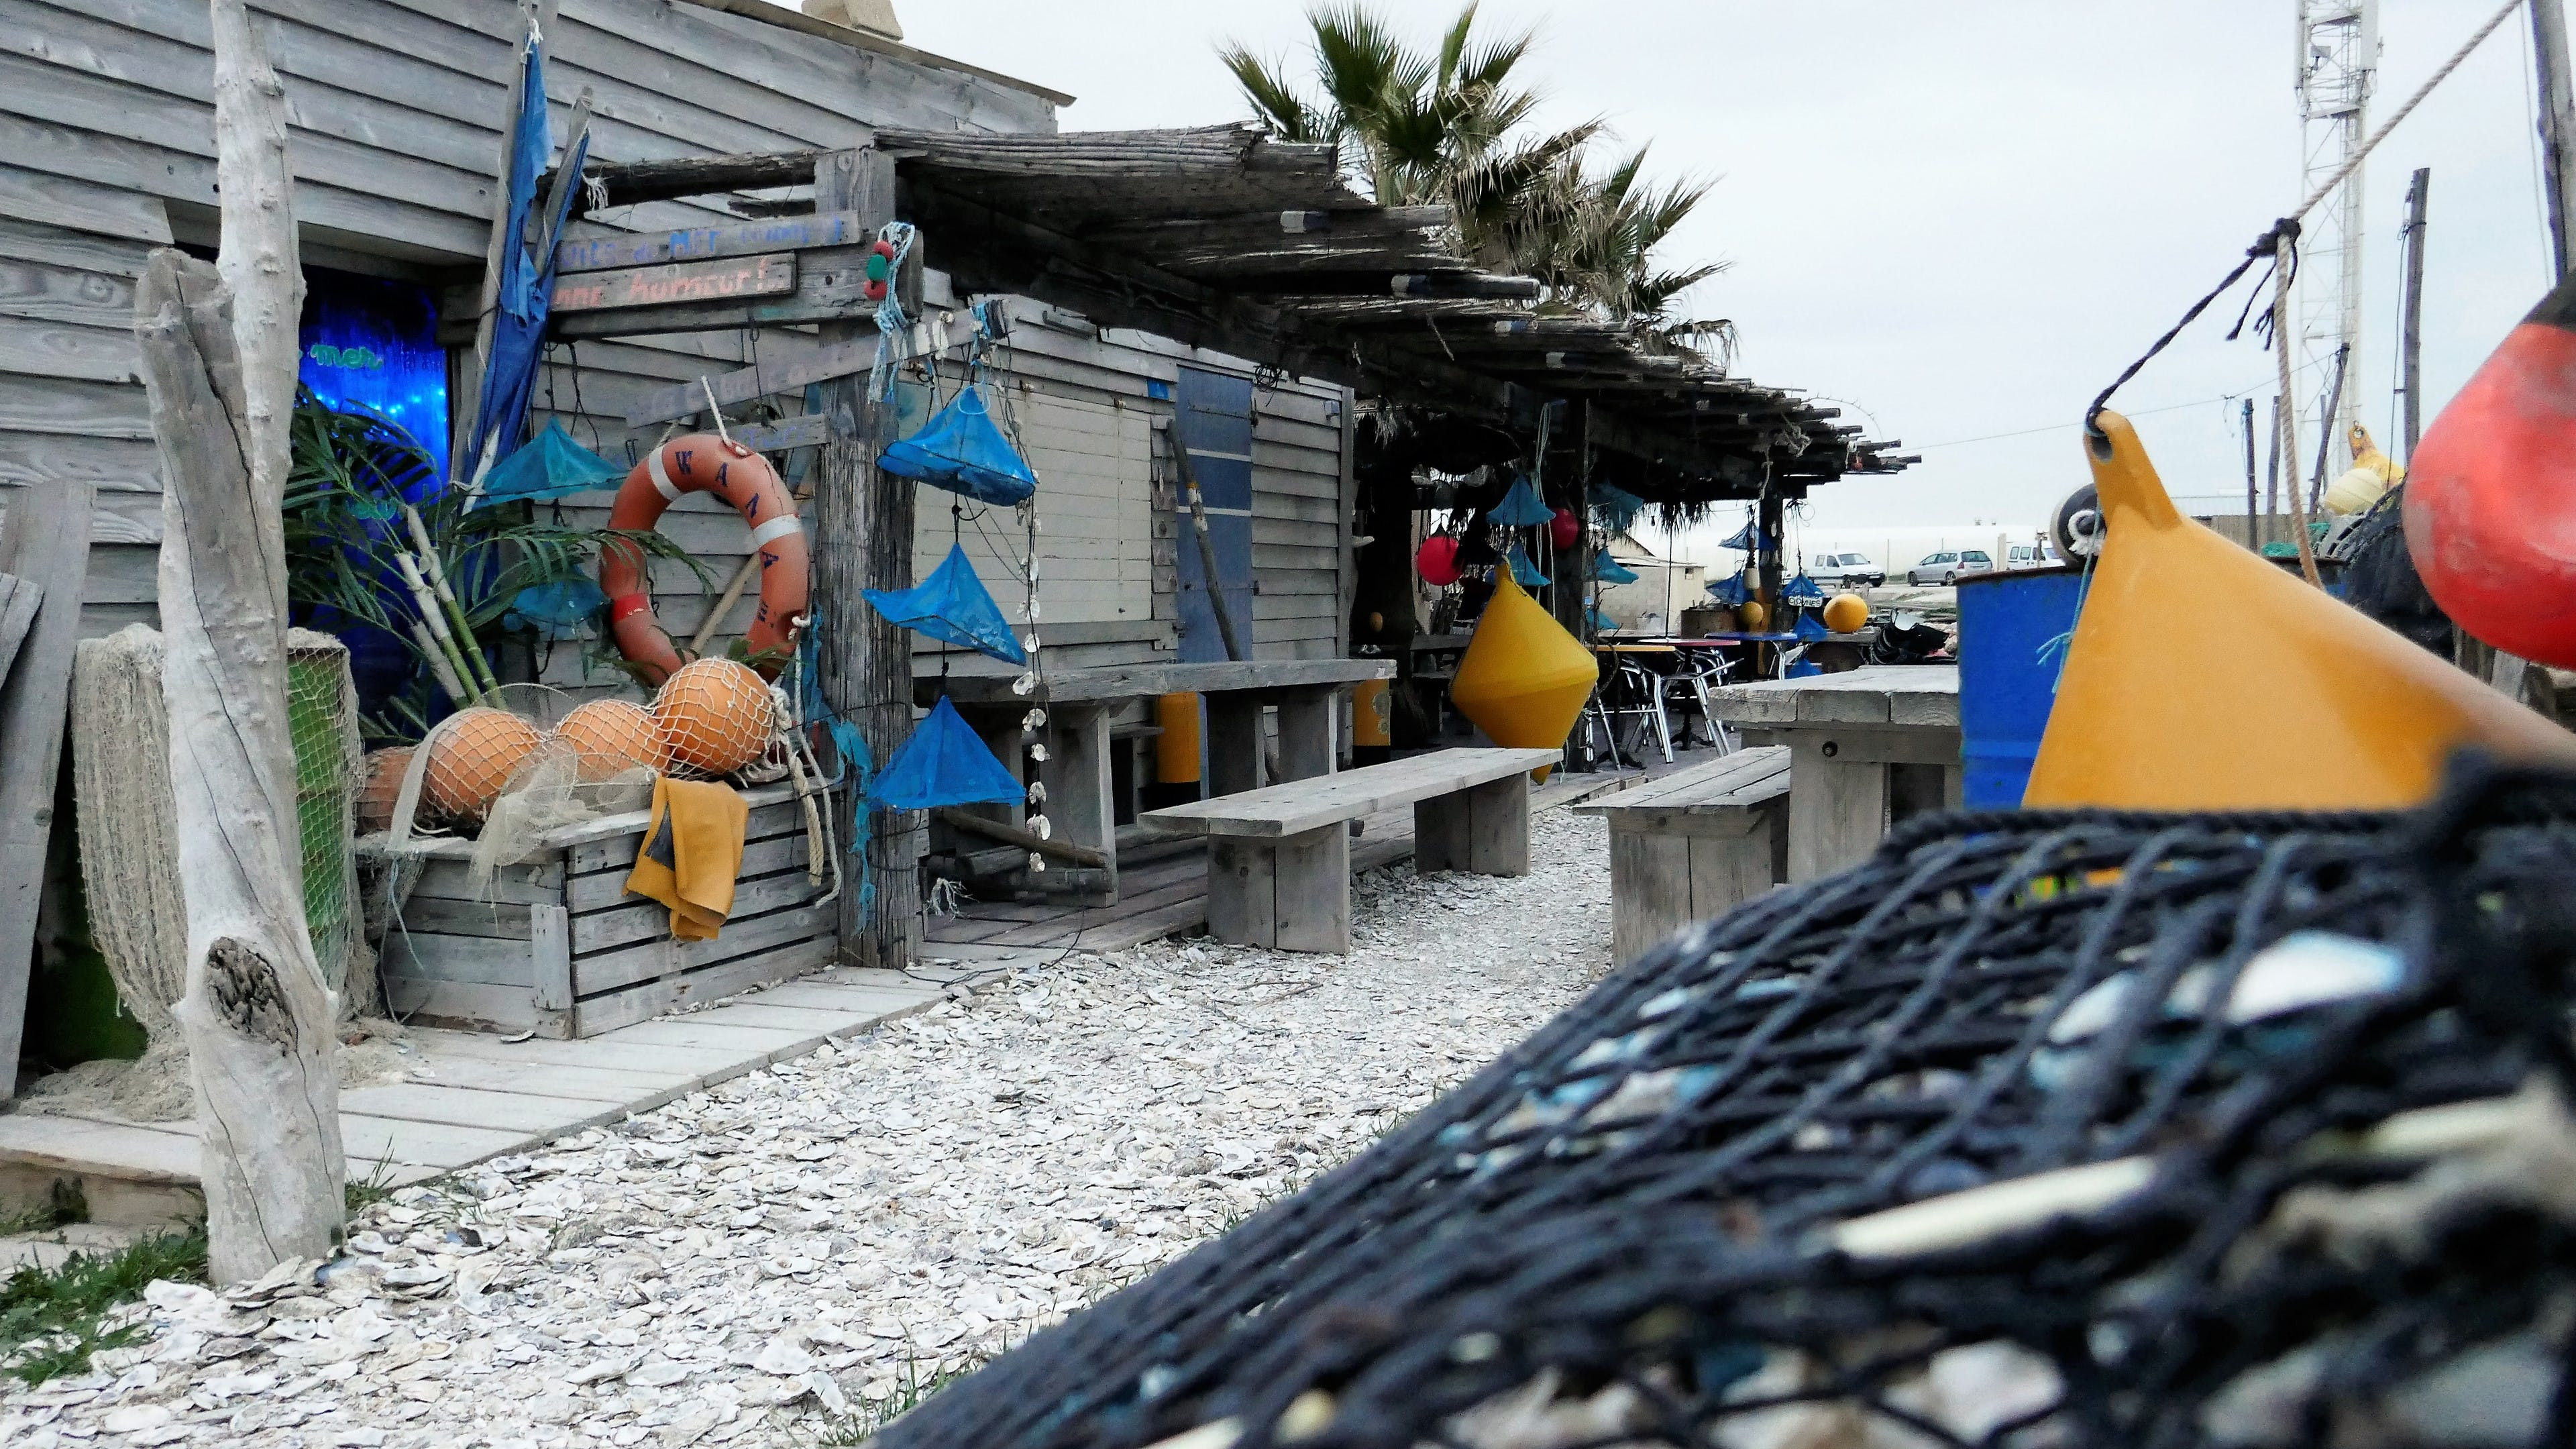 Free stock photo of oysters, seashell harbor, south of france, typical shed